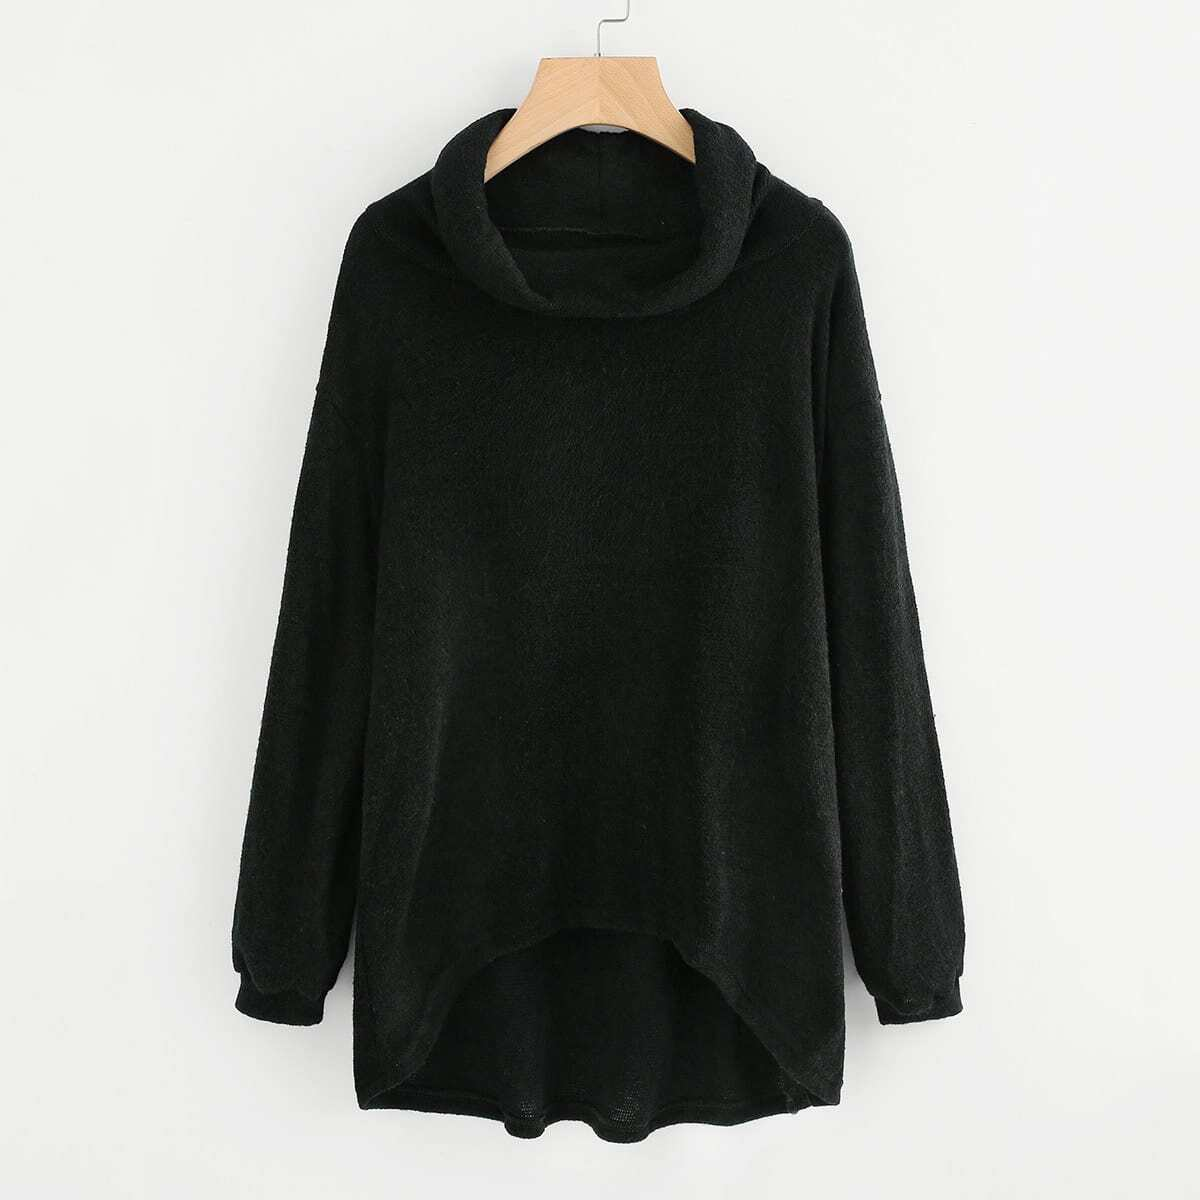 Oversized knit sweater met col